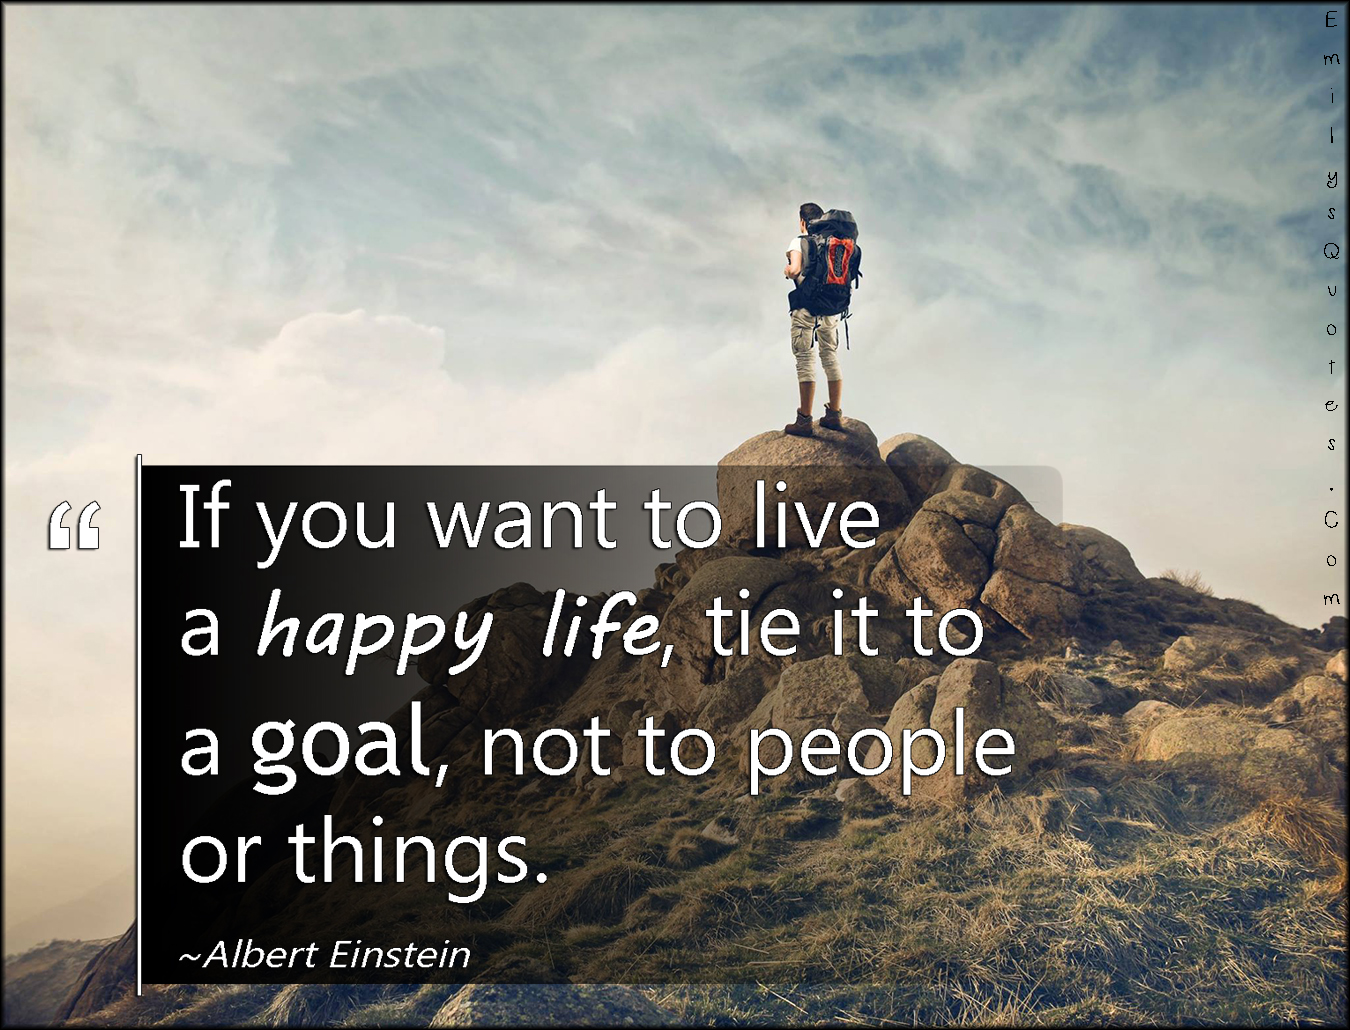 Wisdom Quotes About Life And Happiness If You Want To Live A Happy Life Tie It To A Goal Not To People